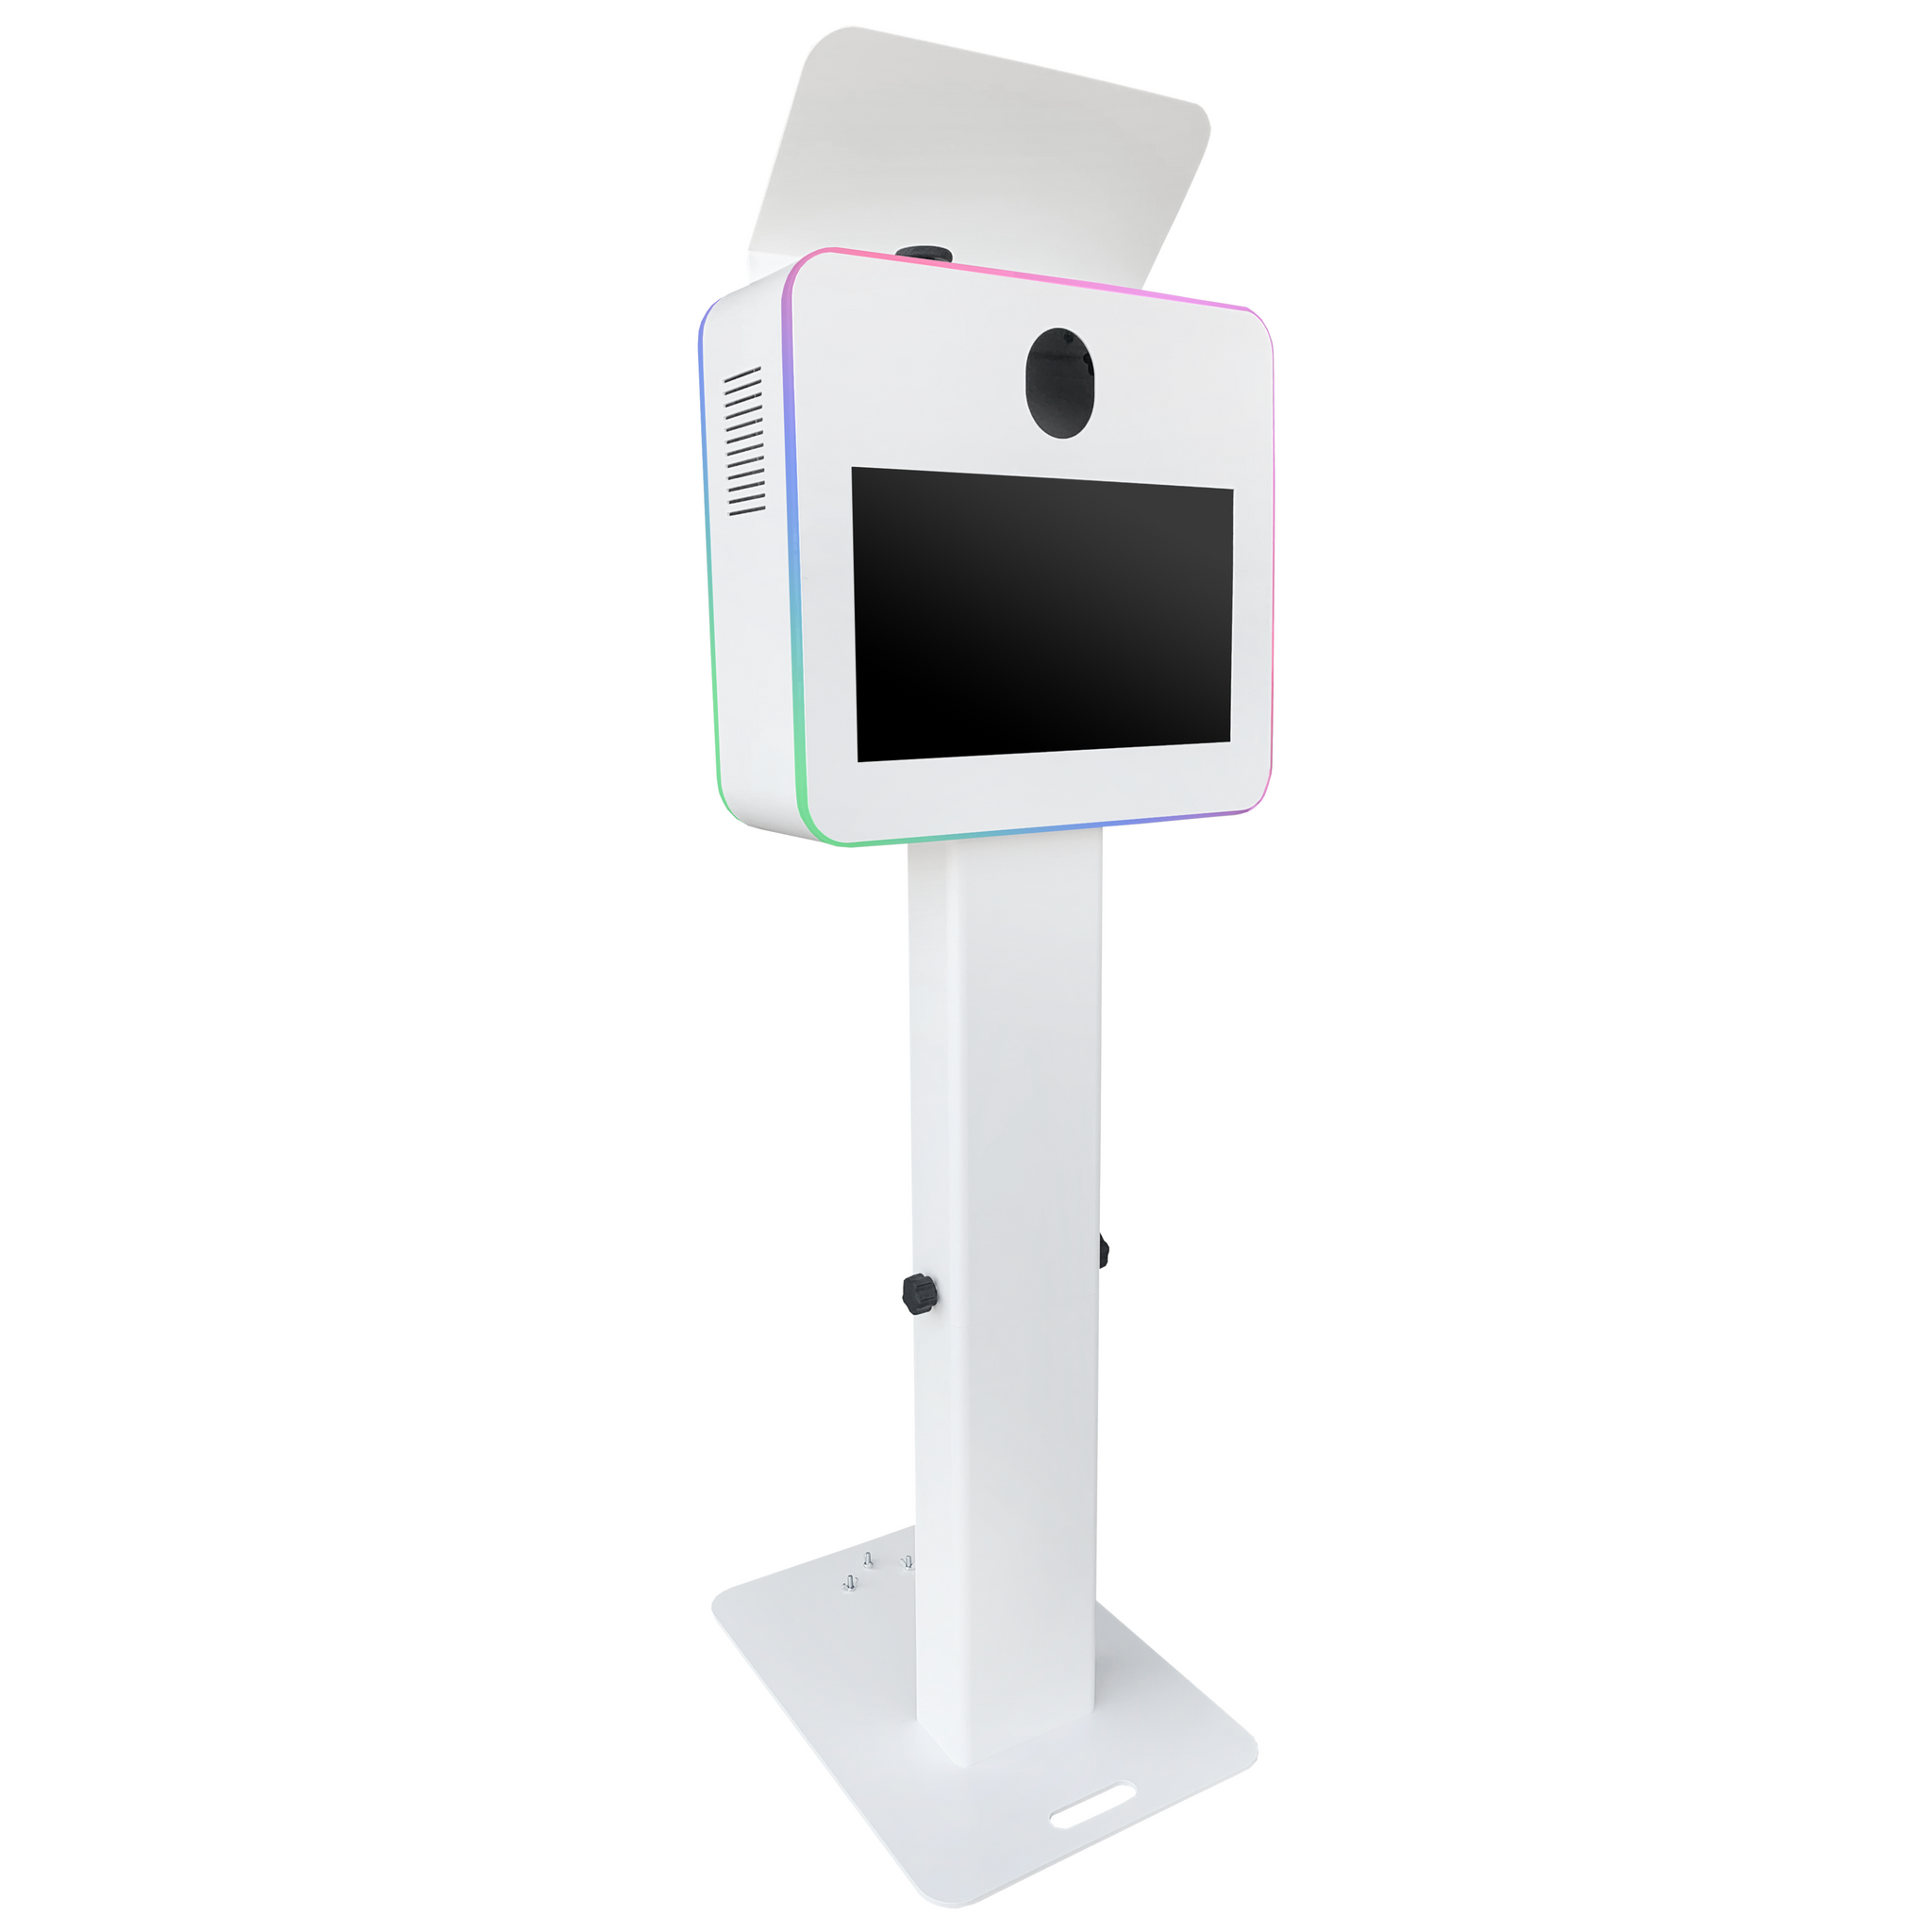 GLAMIFY Photo Booth Business Package - WHITE/BLACK